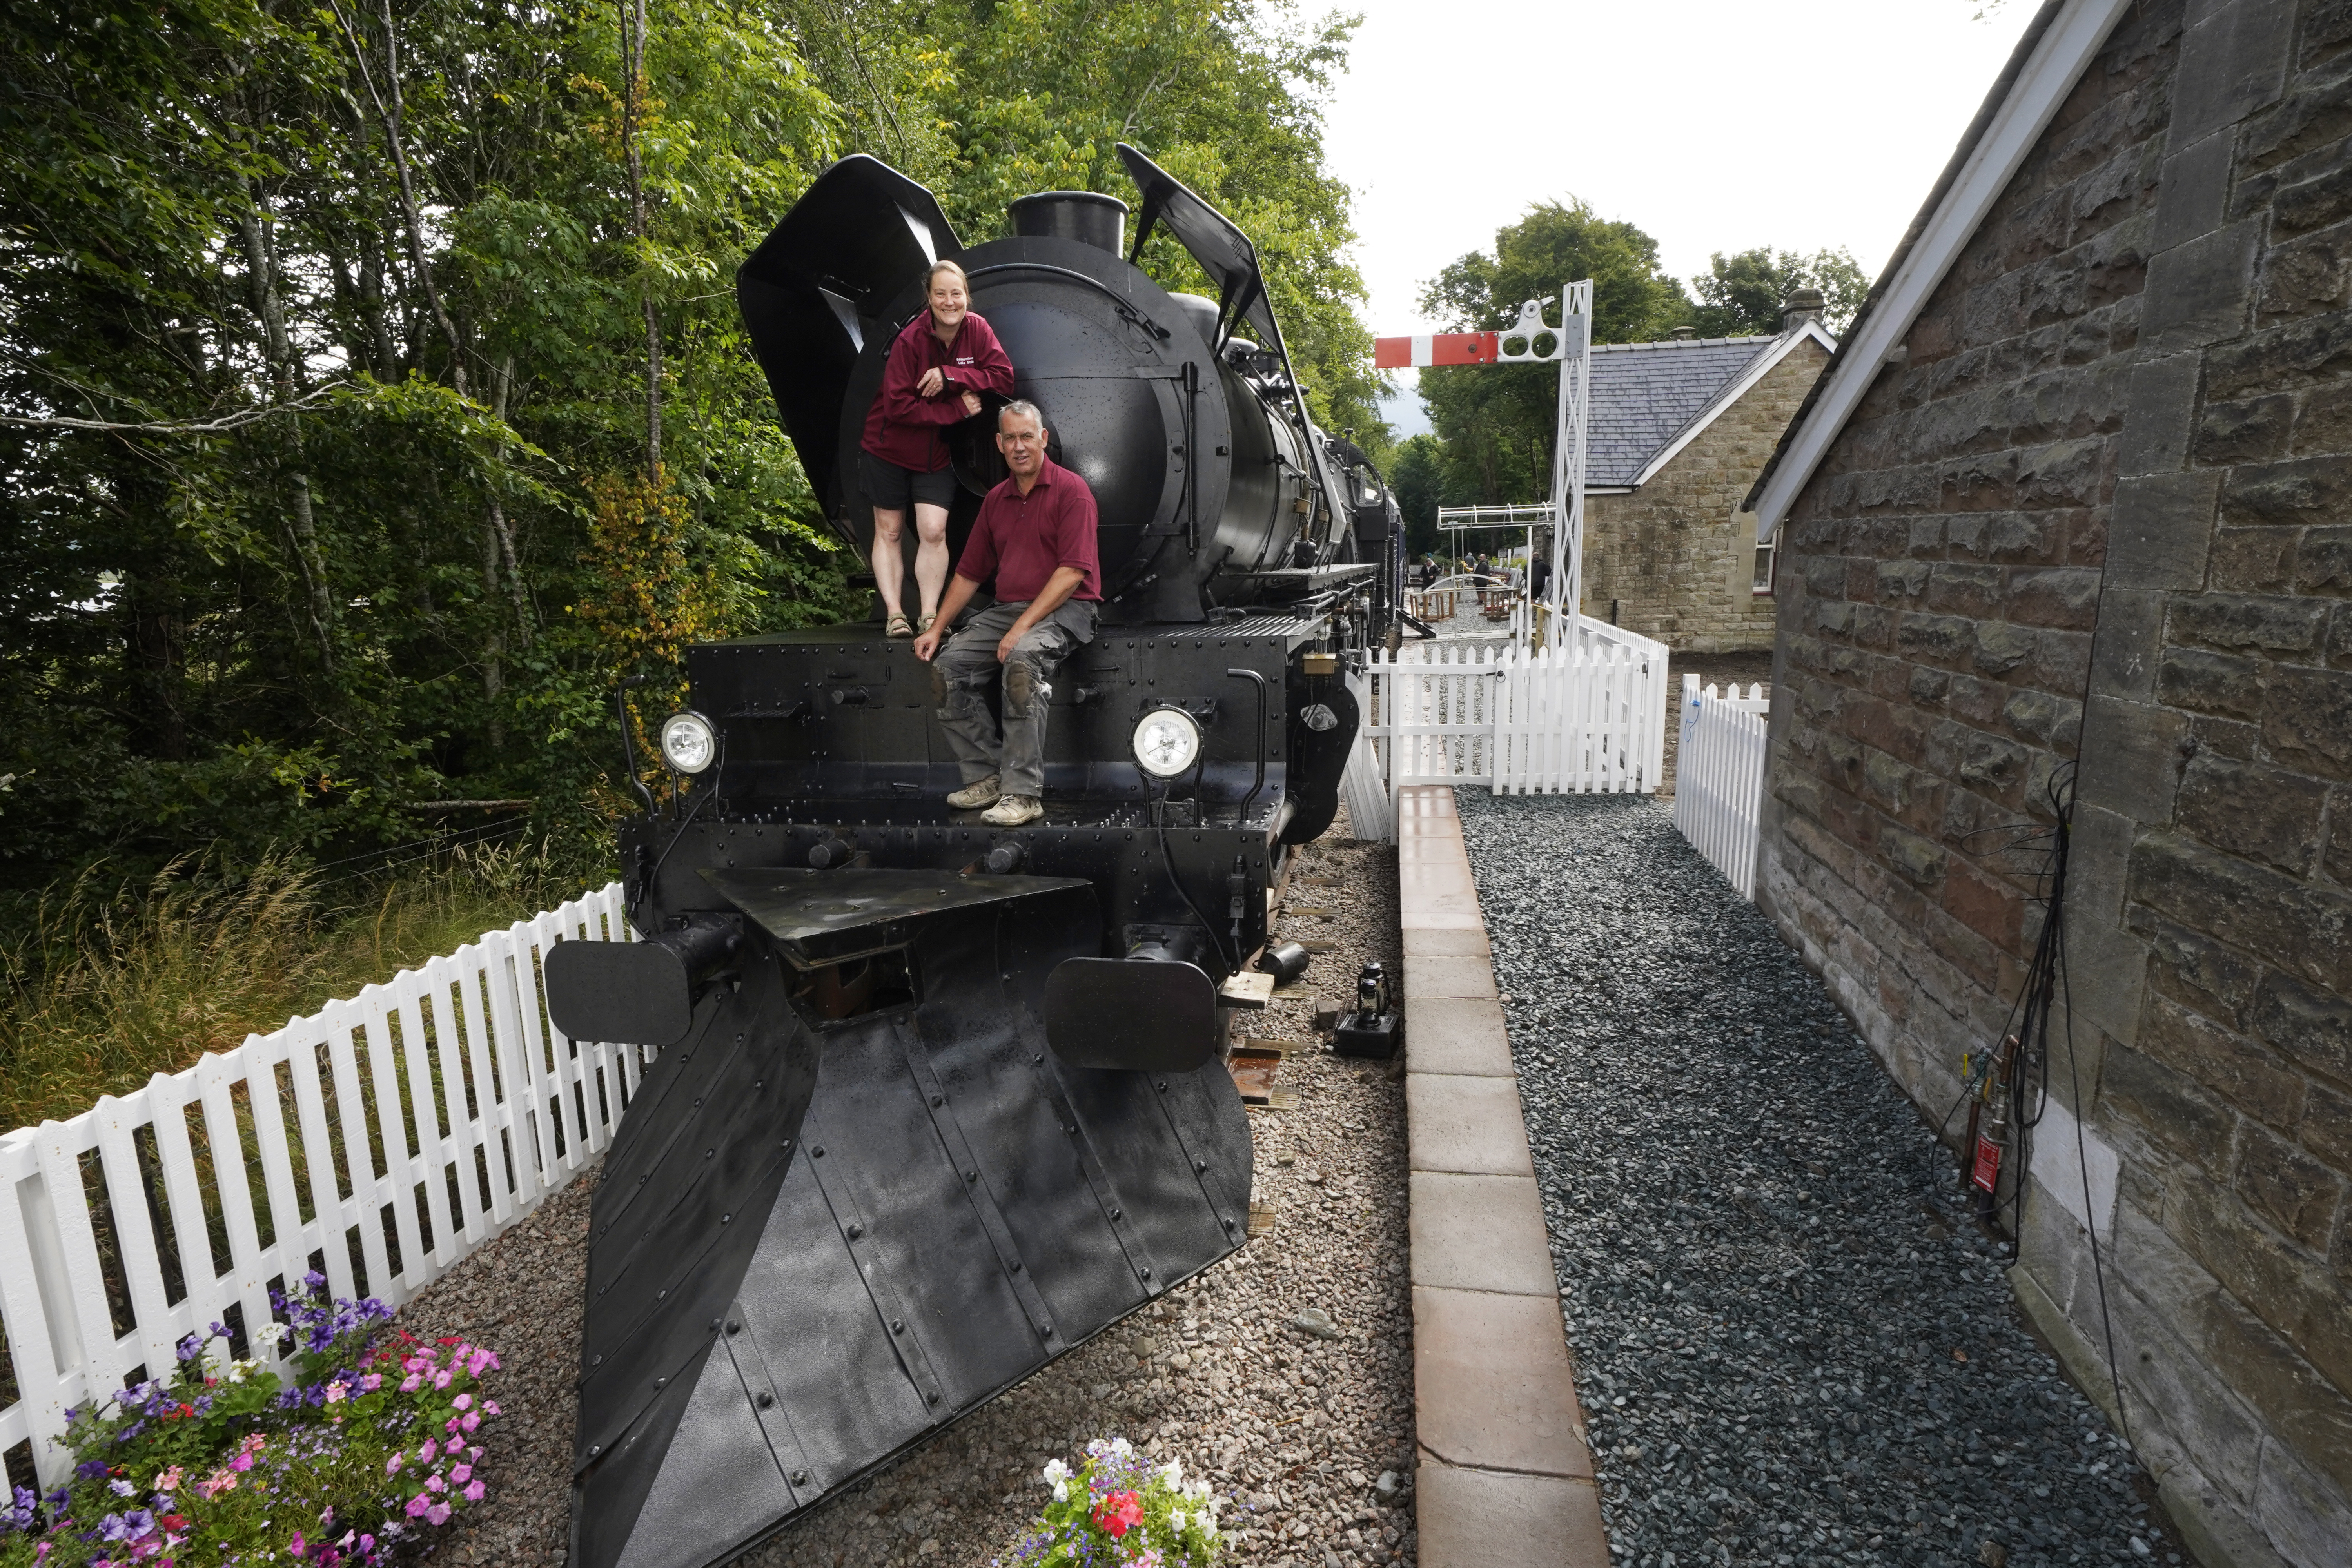 <p>Simon and Diana Parums with their full size steam train with carriages, tracks and platform as they converted and restored Bassenthwaite Lake station in Keswick, offering a dining experience on a Hollywood movie restaurant carriage as its centrepiece, when they open it to the public as an attraction. Picture date: Wednesday July 28, 2021.</p>